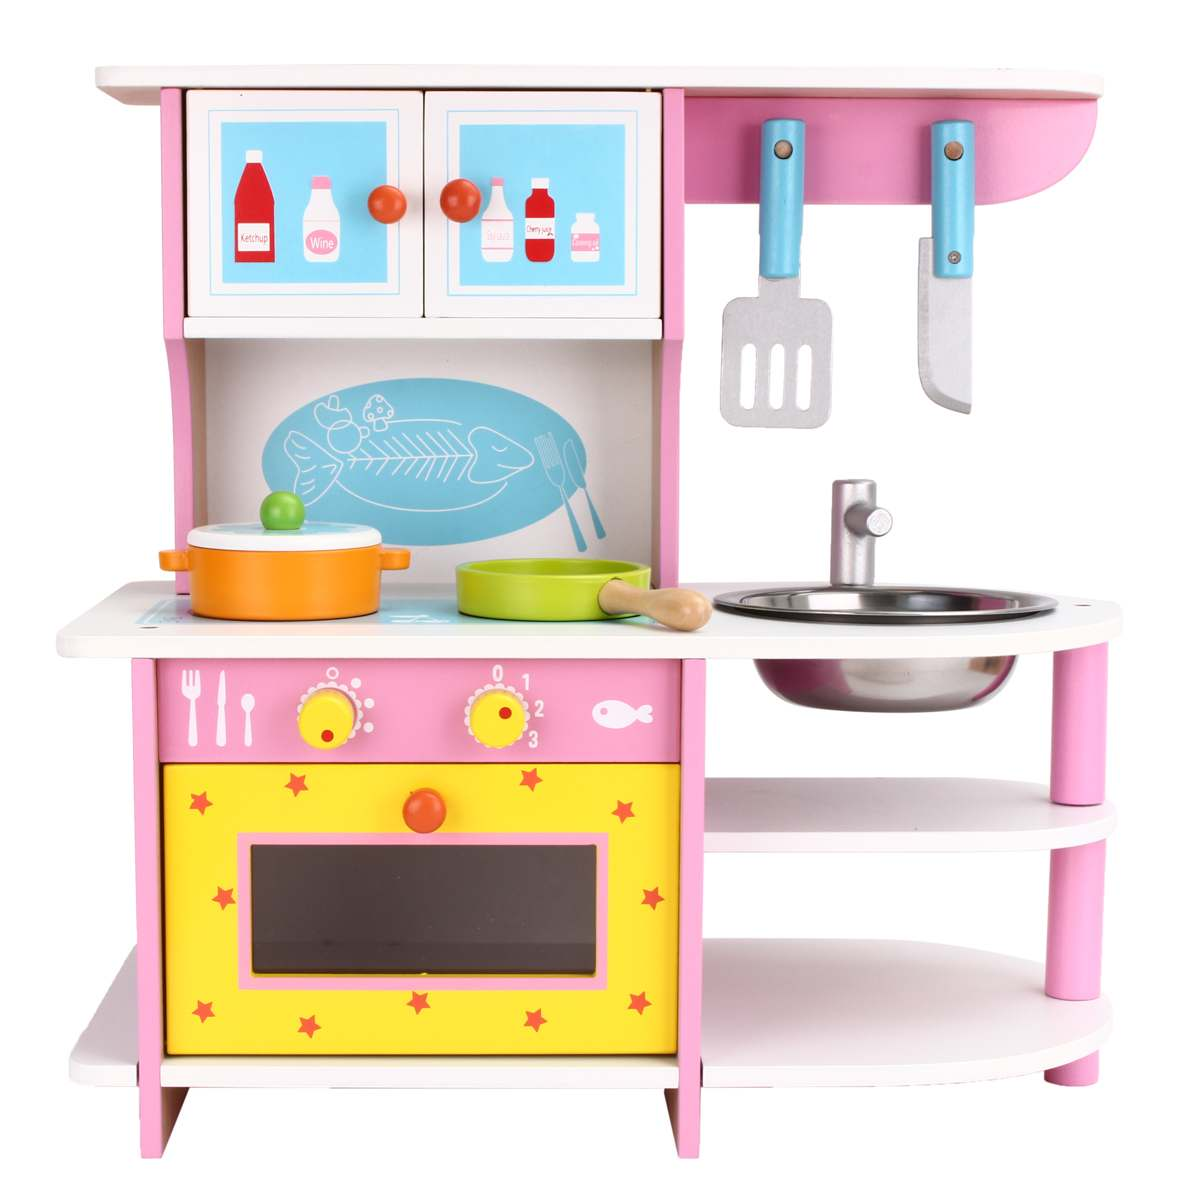 US $51.13 24% OFF Wooden Kids Kitchen Toys Pretend Play Children Role Play  Educational Toy Set Cooking Tools Kit Girls Birthday Christmas Gifts-in ...